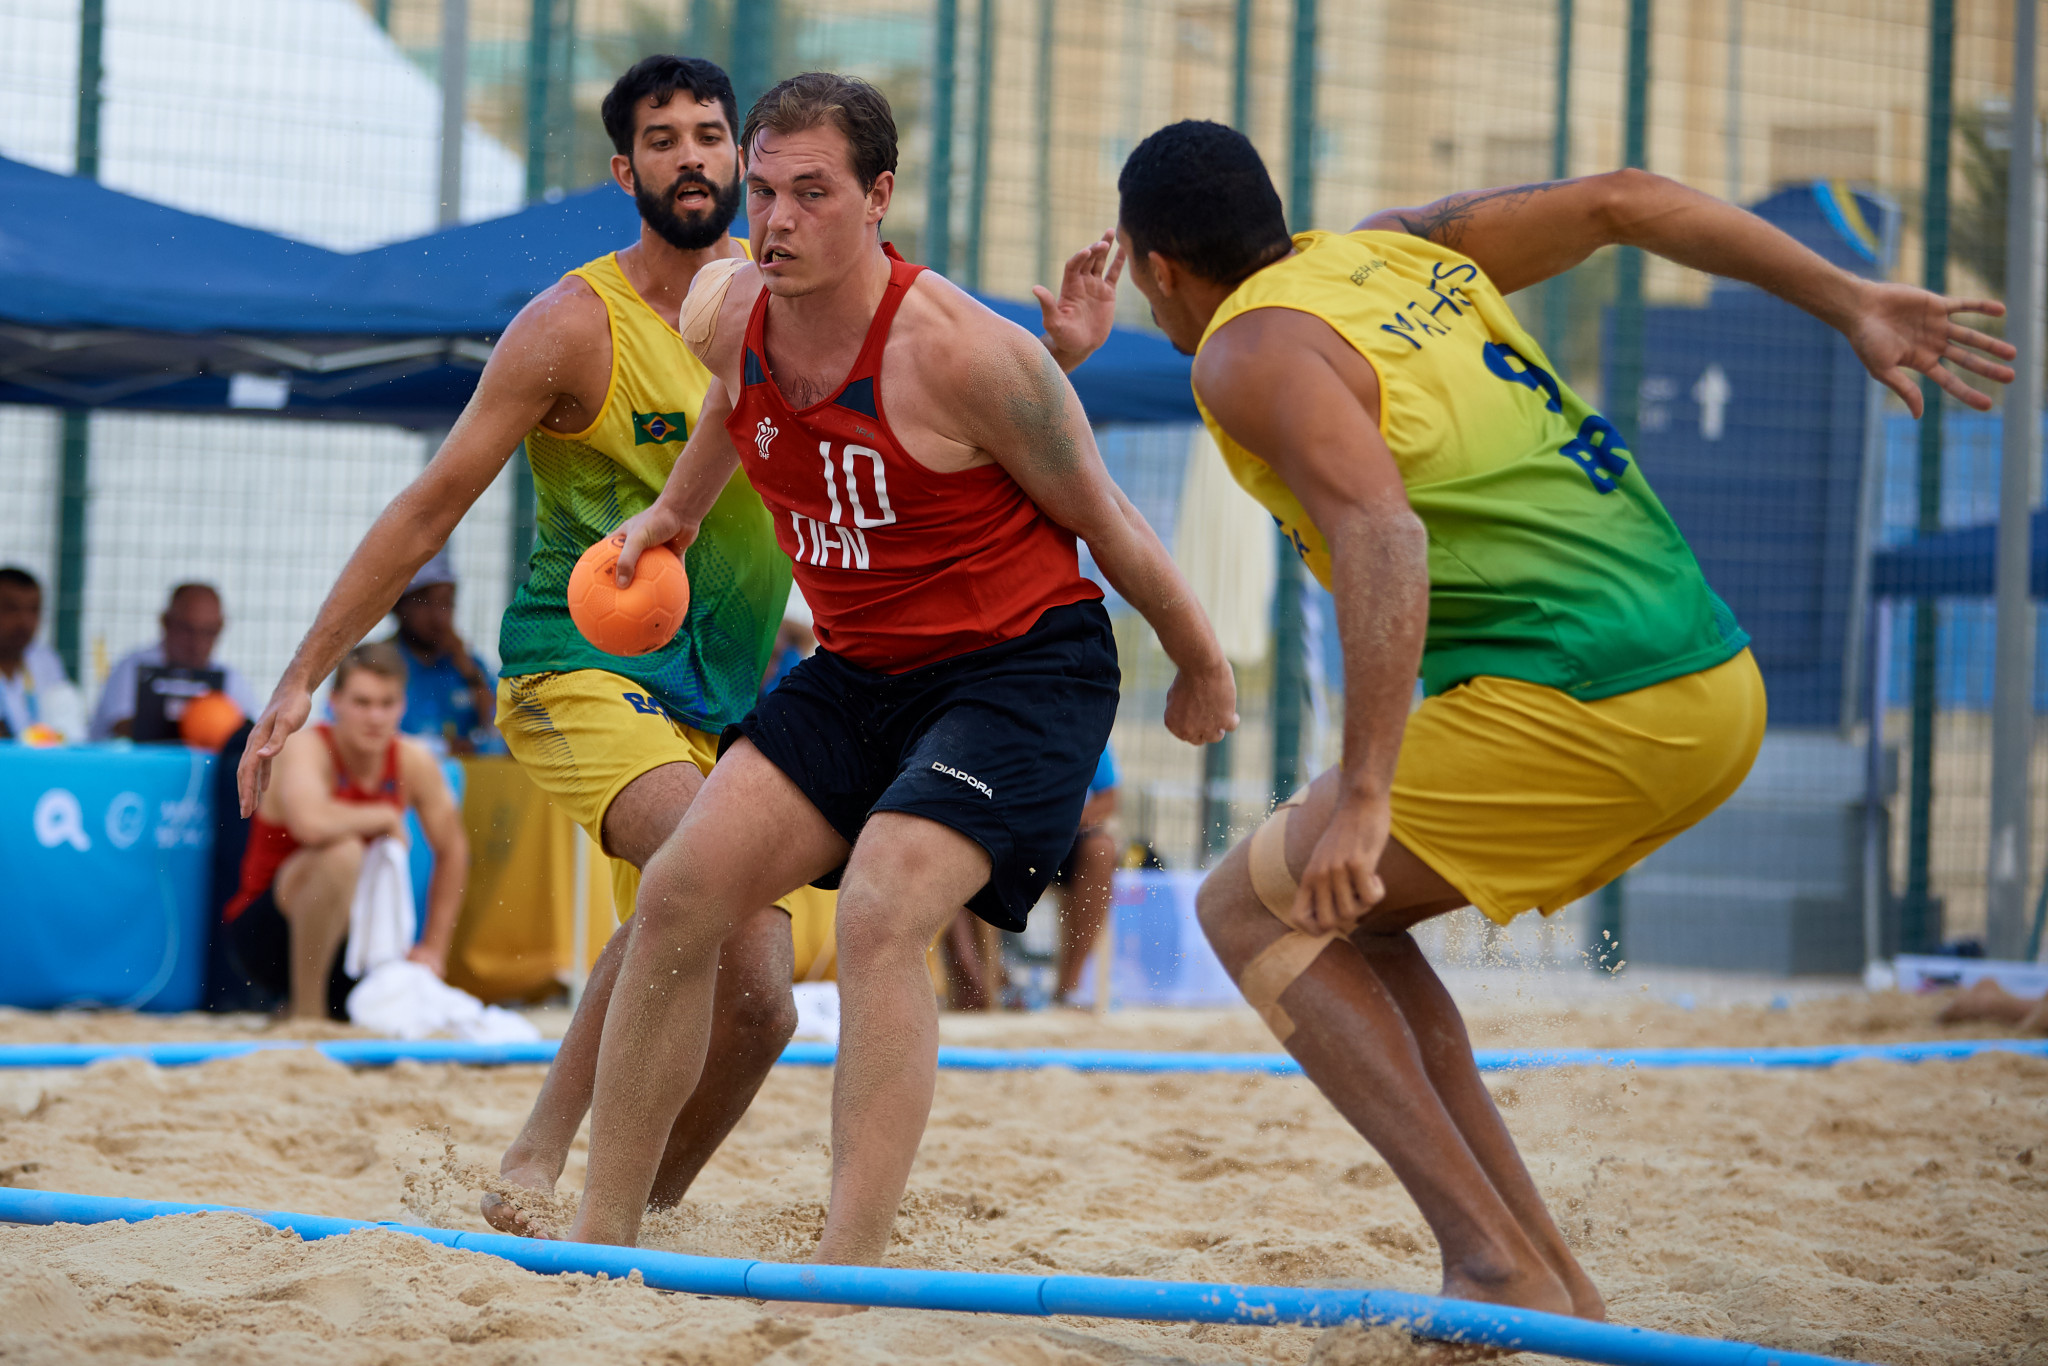 Denmark defeat beach handball world champions at ANOC World Beach Games